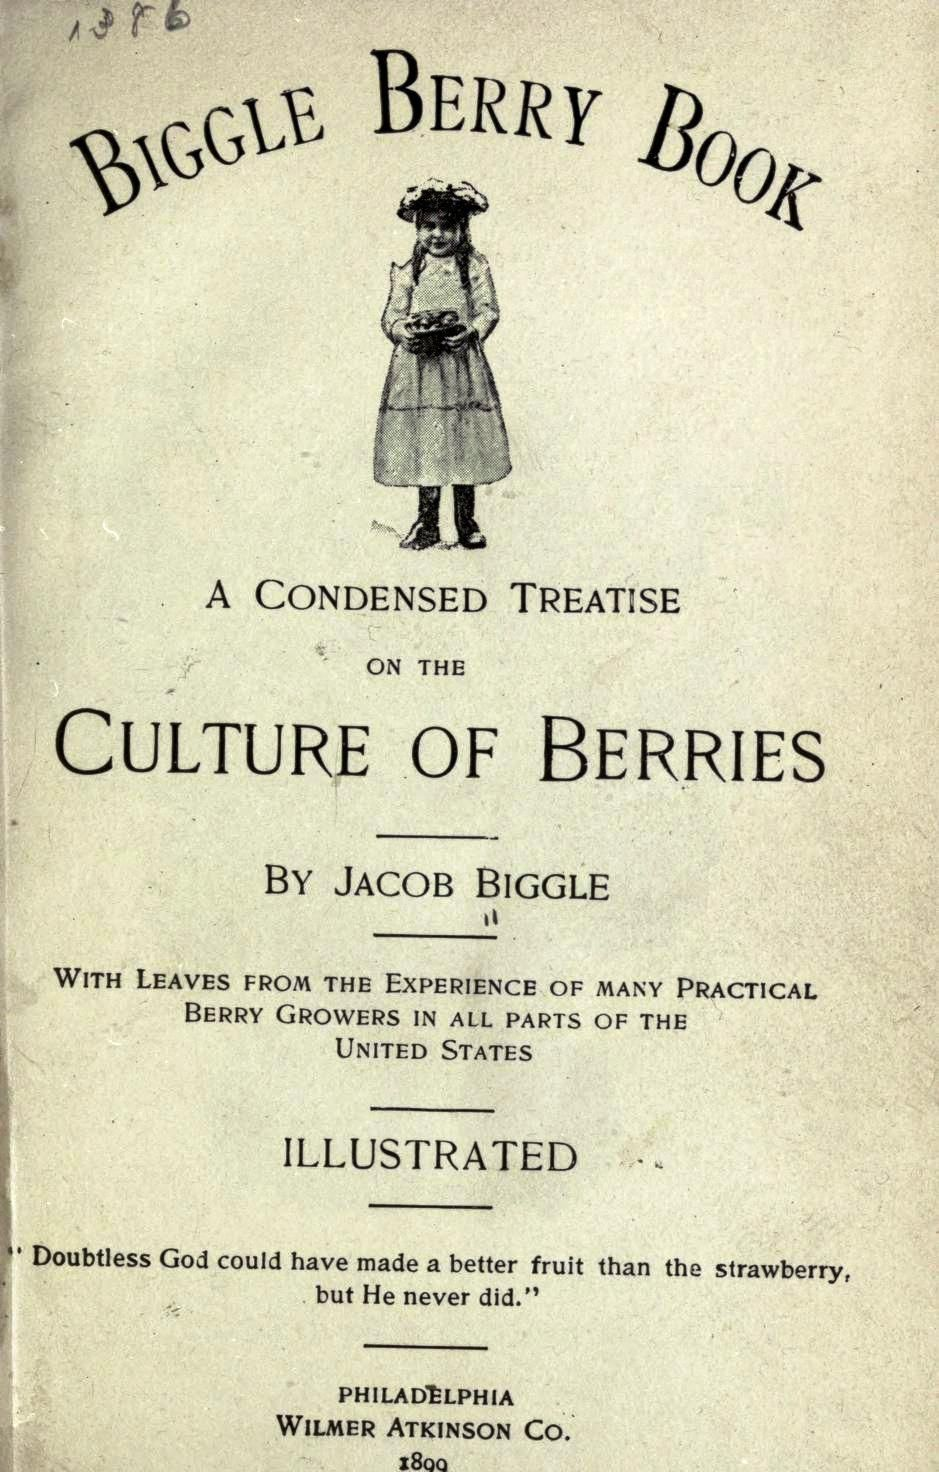 printed matter title page biggles berry book